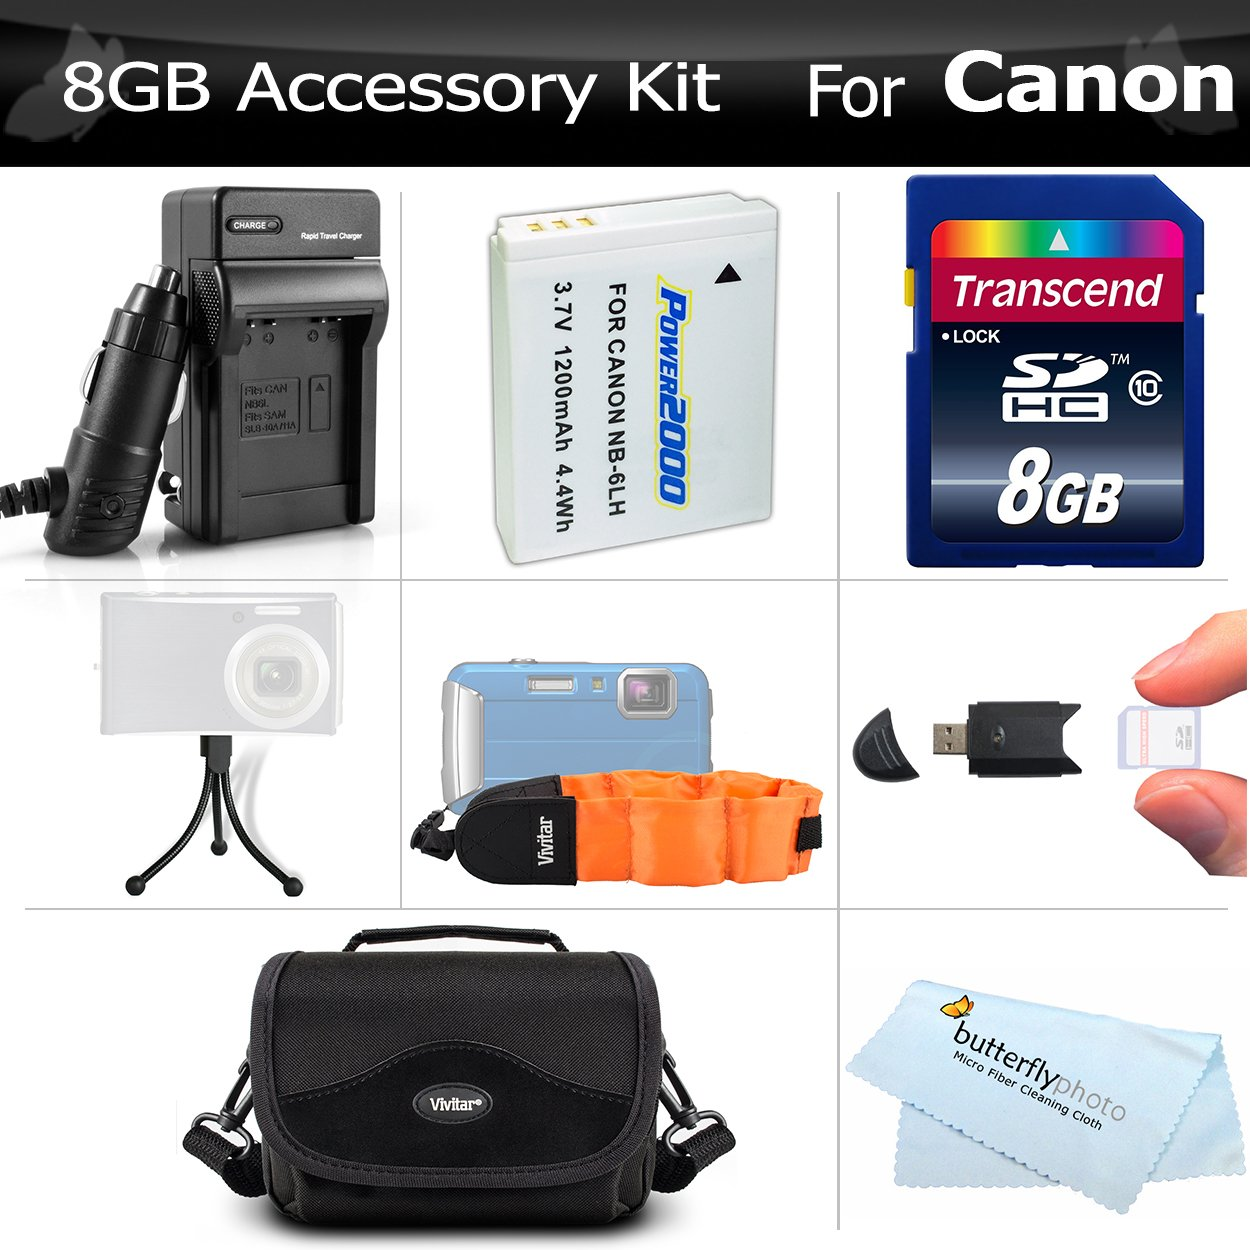 8GB Accessory Kit For Canon PowerShot D10 D20 D30 Waterproof Digital Camera Includes 8GB High Speed SD Memory Card + Extended (1200Mah) Replacement NB-6L Battery + Ac/ D/c Travel Charger + Floating Strap + Deluxe Case + USB 2.0 SD Reader + Much More